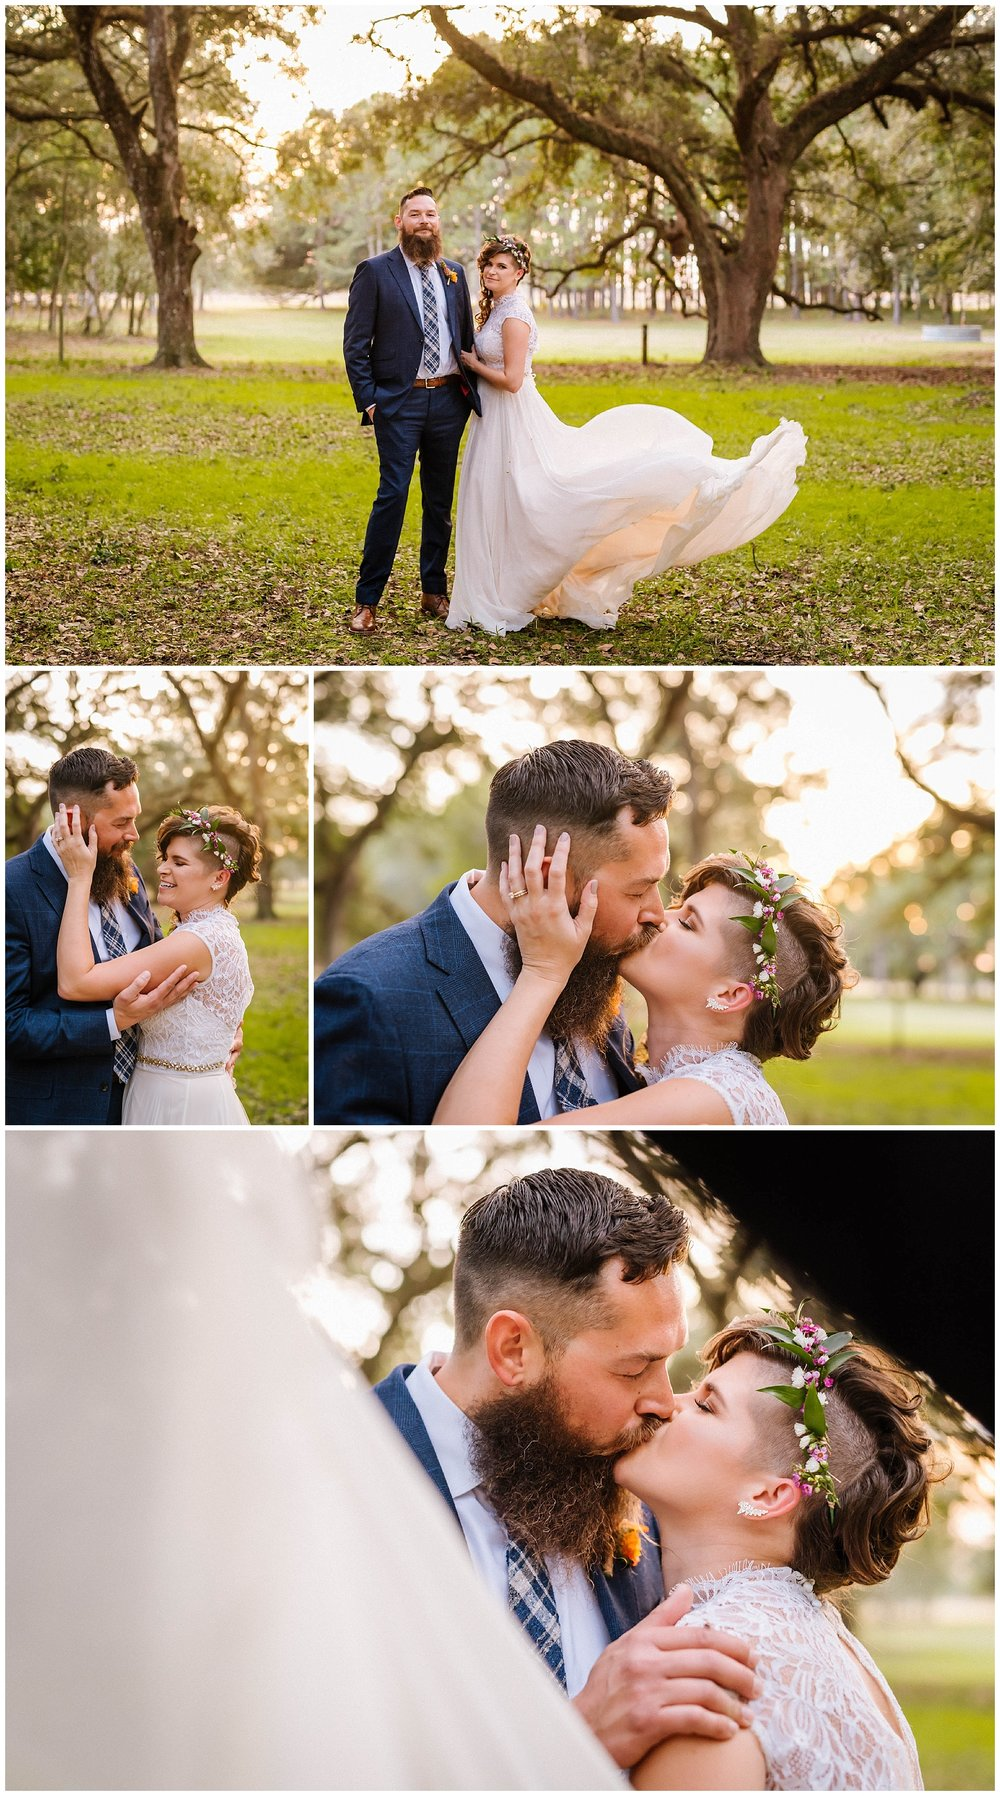 magical-outdoor-florida-wedding-smoke-bombs-flowers-crown-beard_0046.jpg